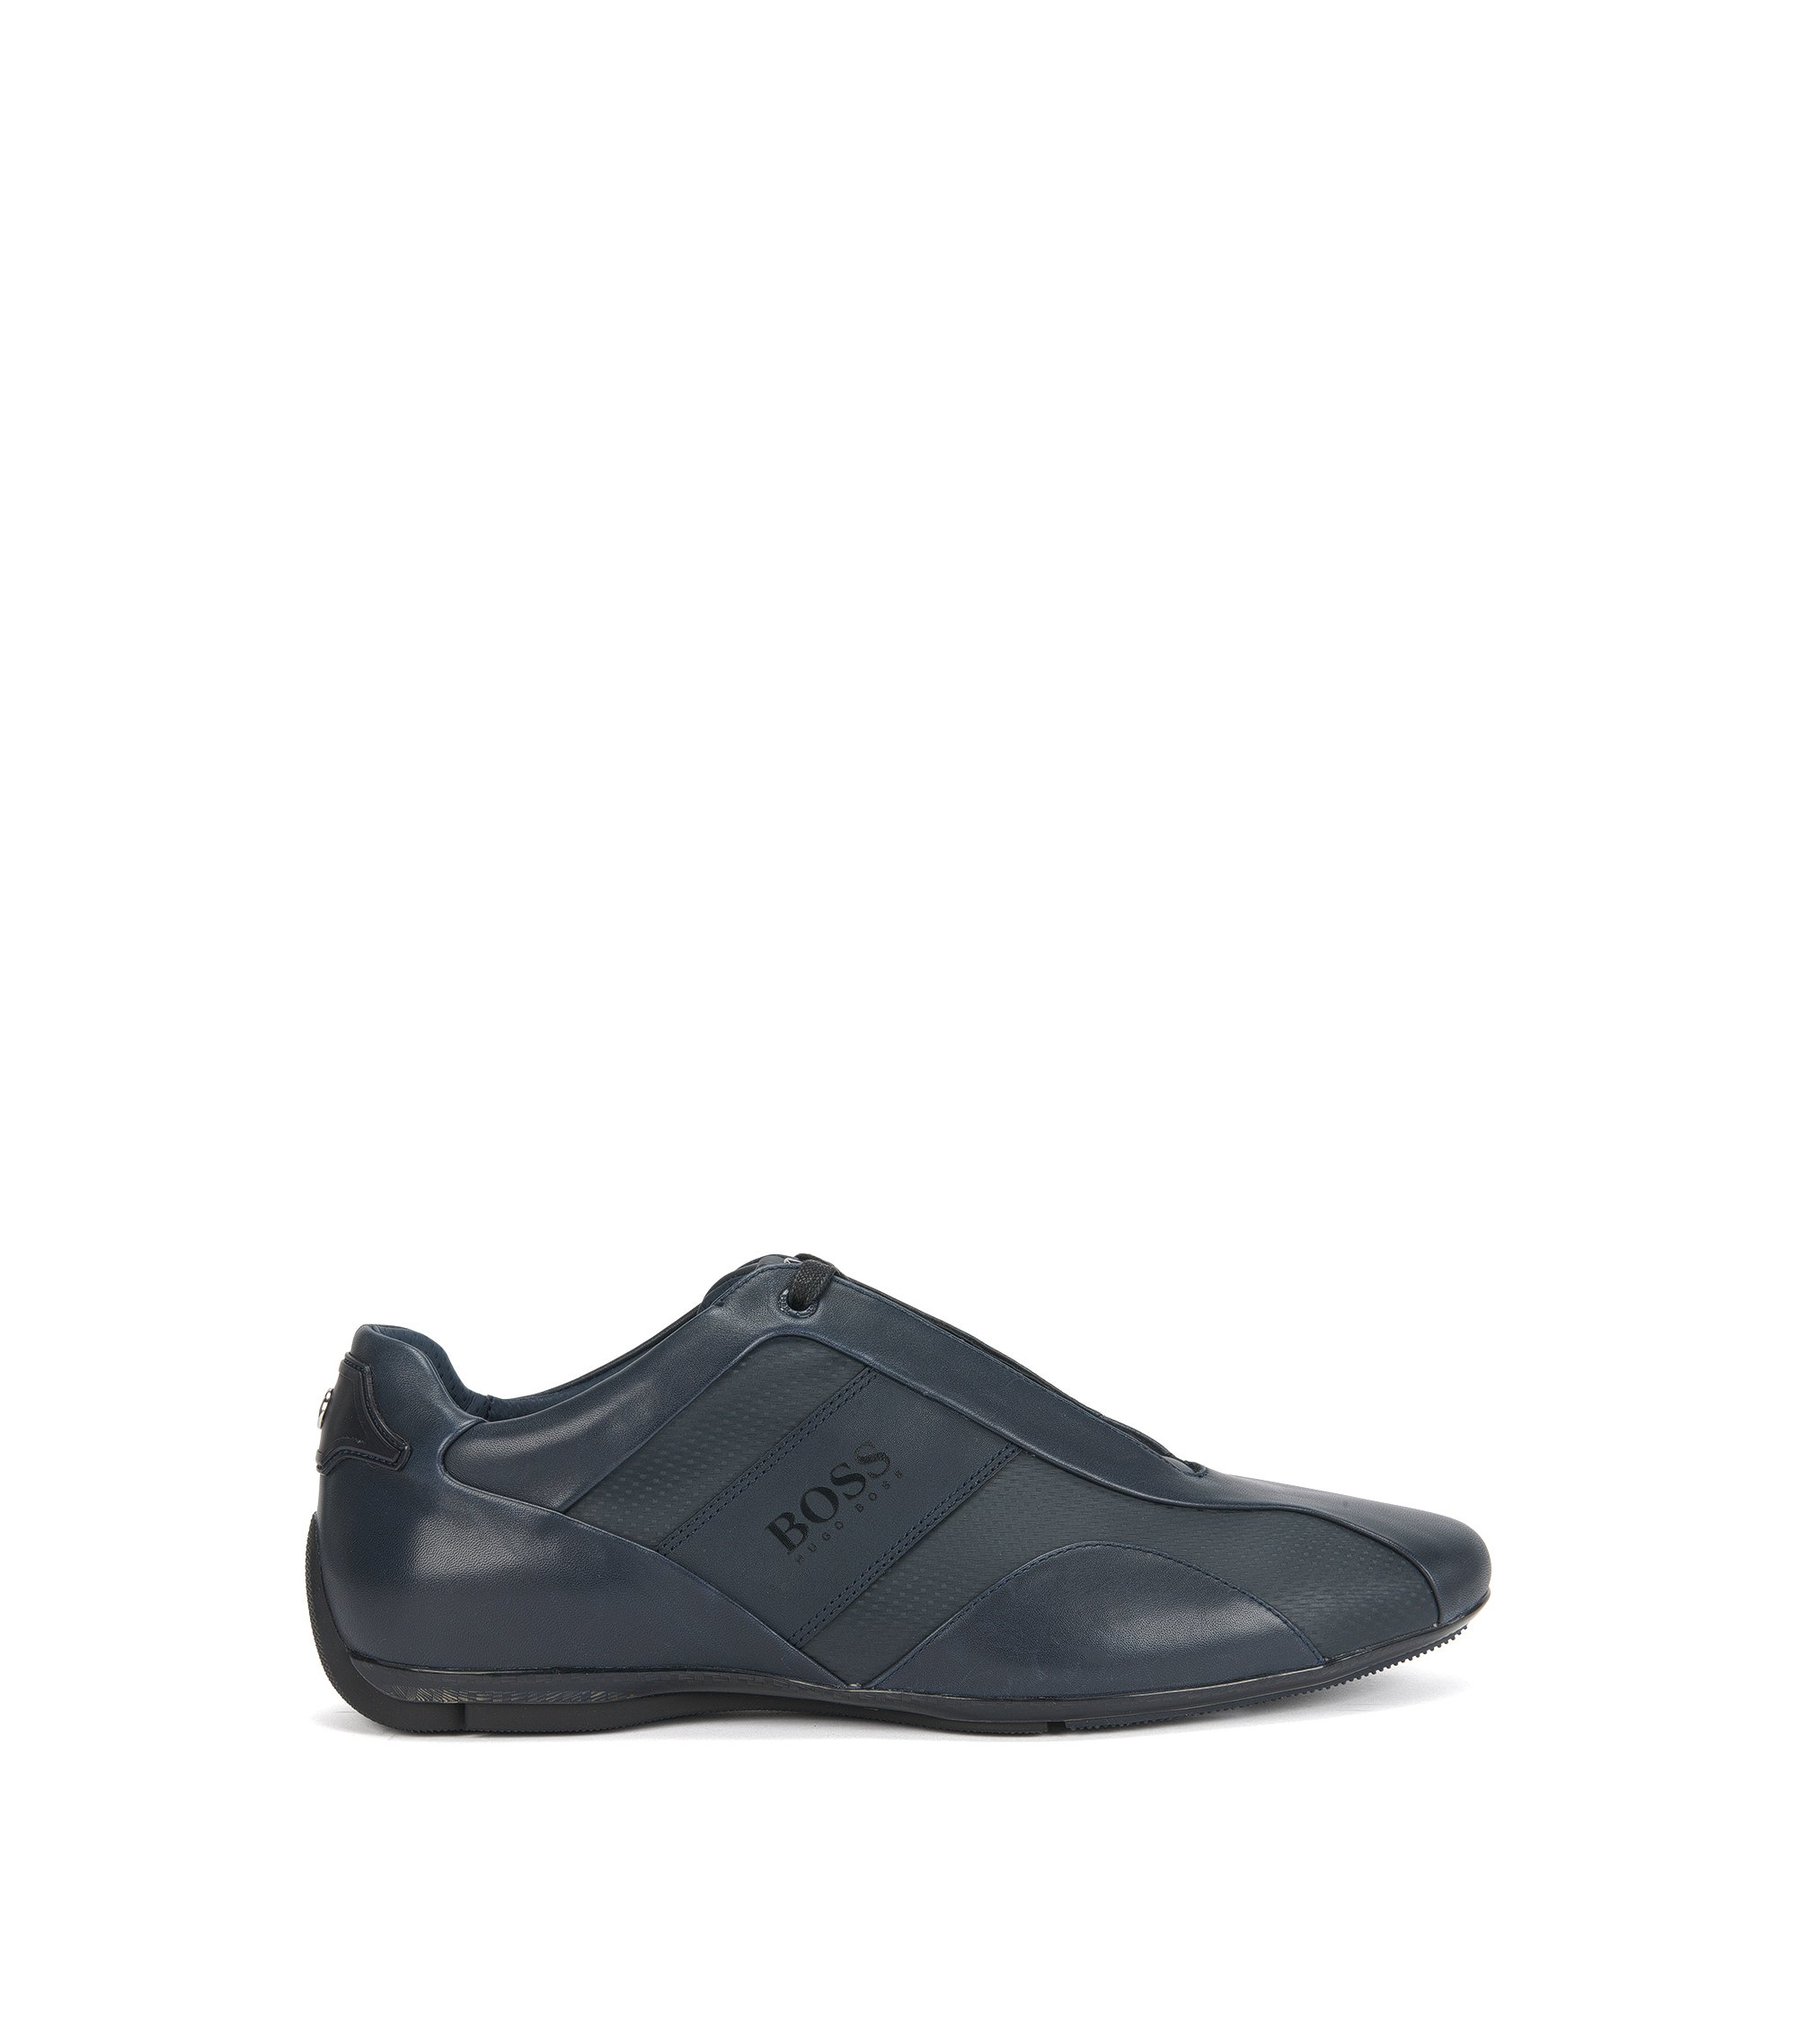 Mercedes-Benz Leather Sneaker | Sporty Lowp Mcmb, Dark Blue